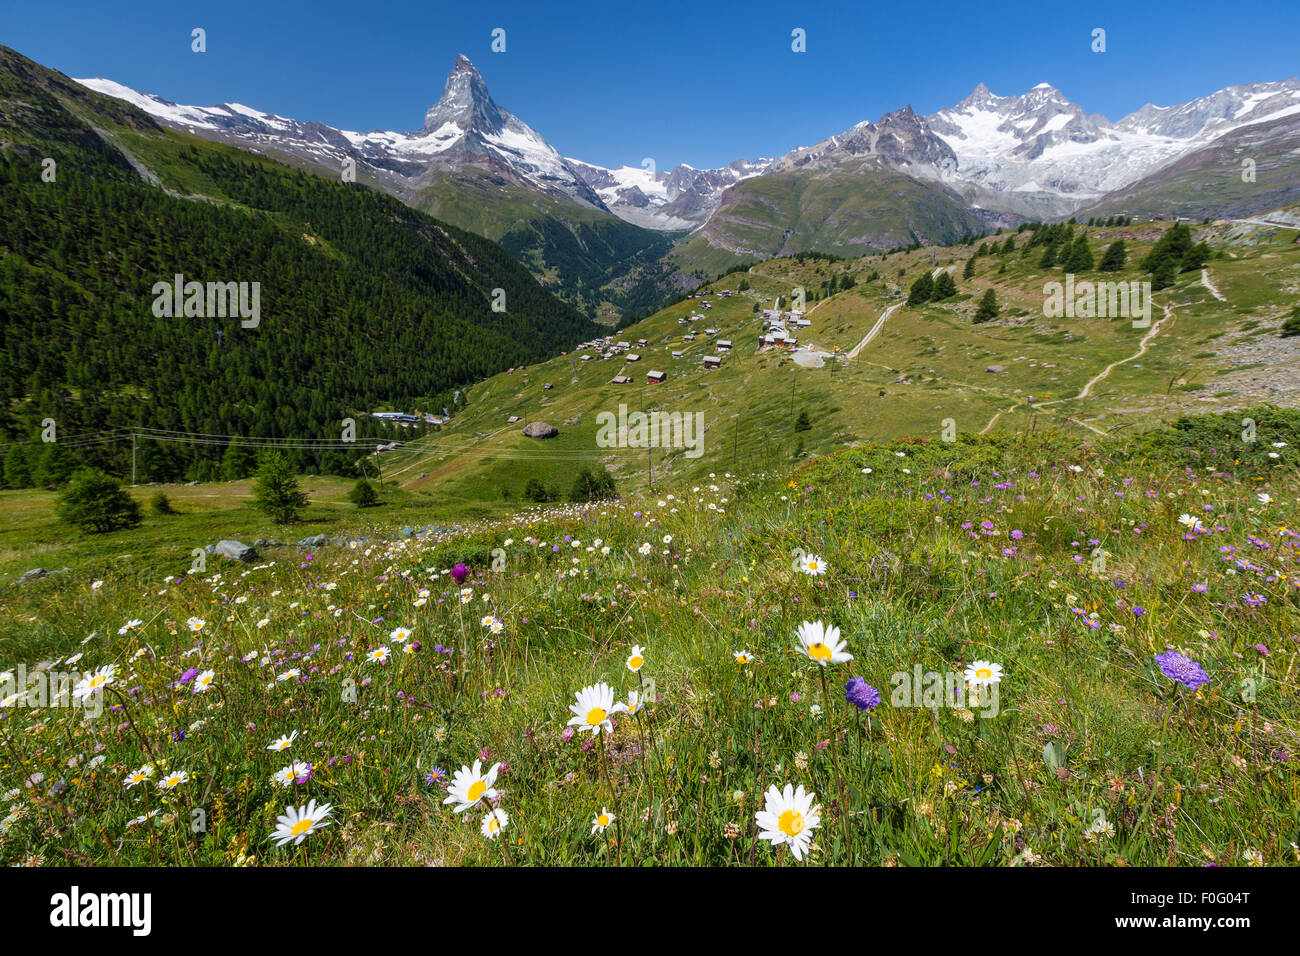 Flowers Mountains Alpine Switzerland Stock Photos   Flowers     Flowers Mountains Alpine Switzerland Stock Photos and Images